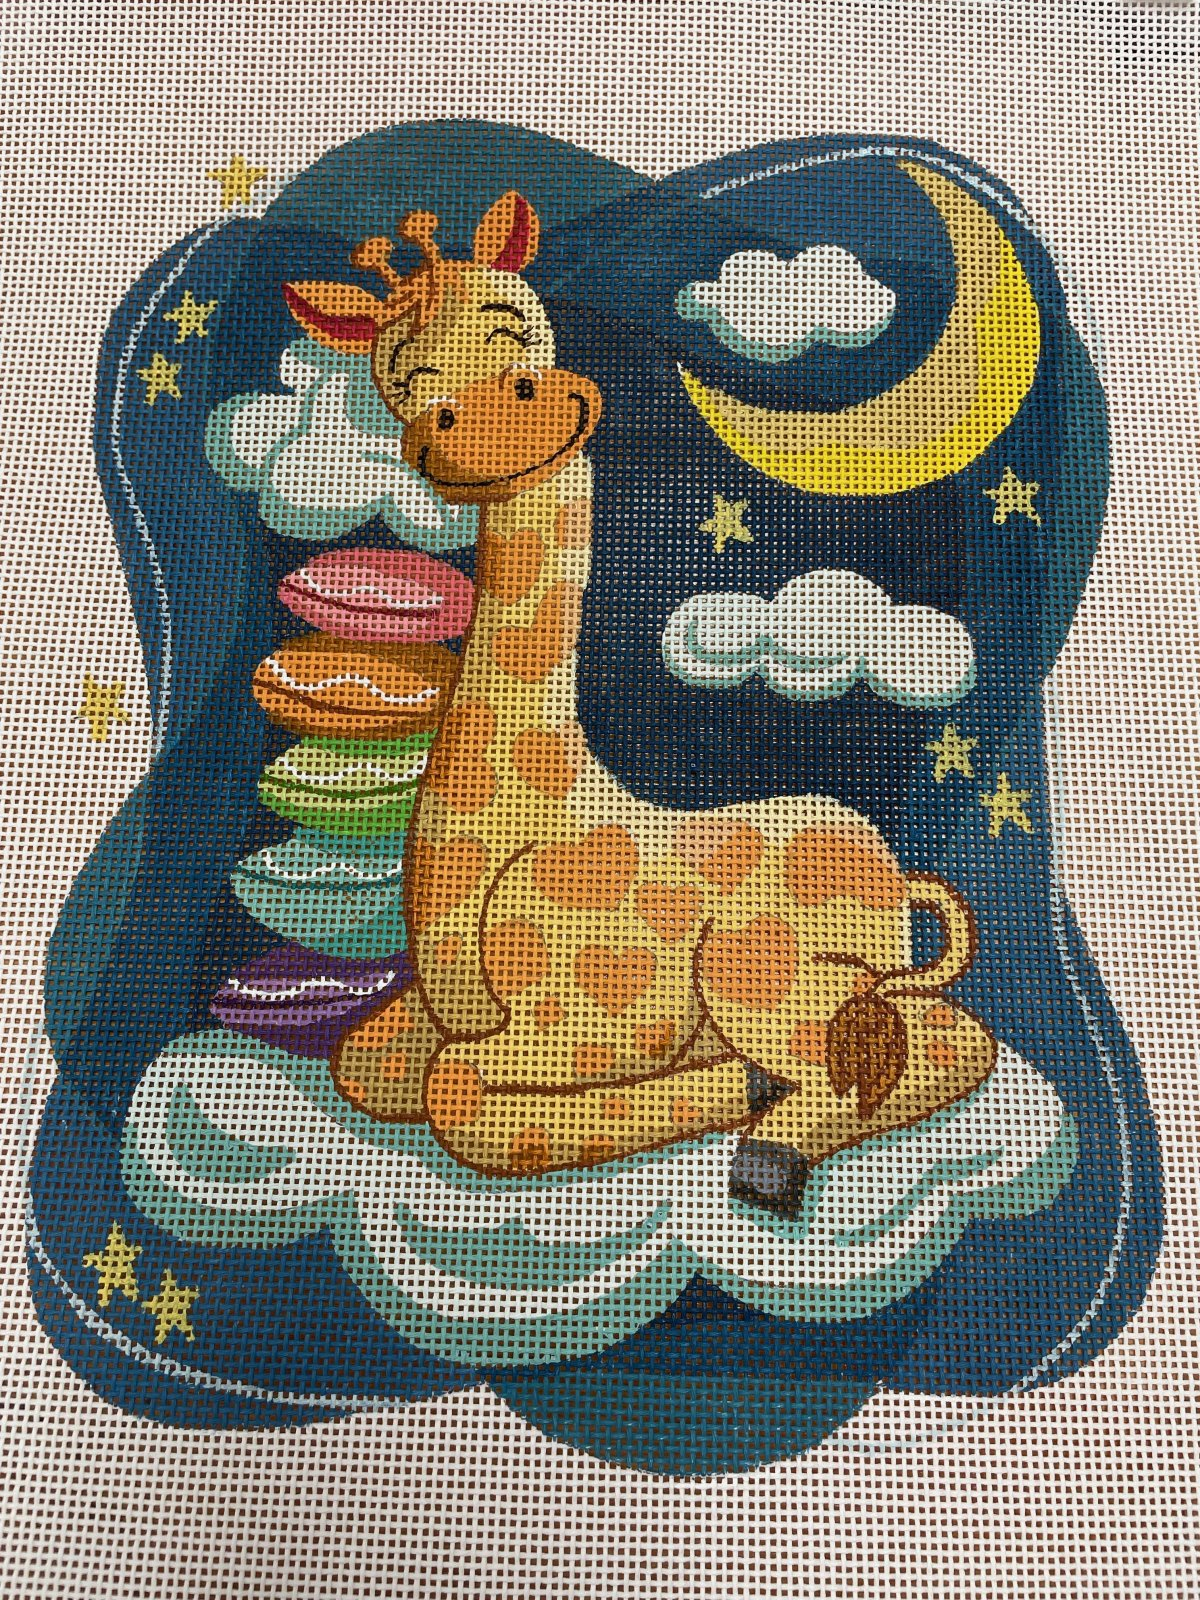 Sleeping Smiling Giraffe with Pillow Stack